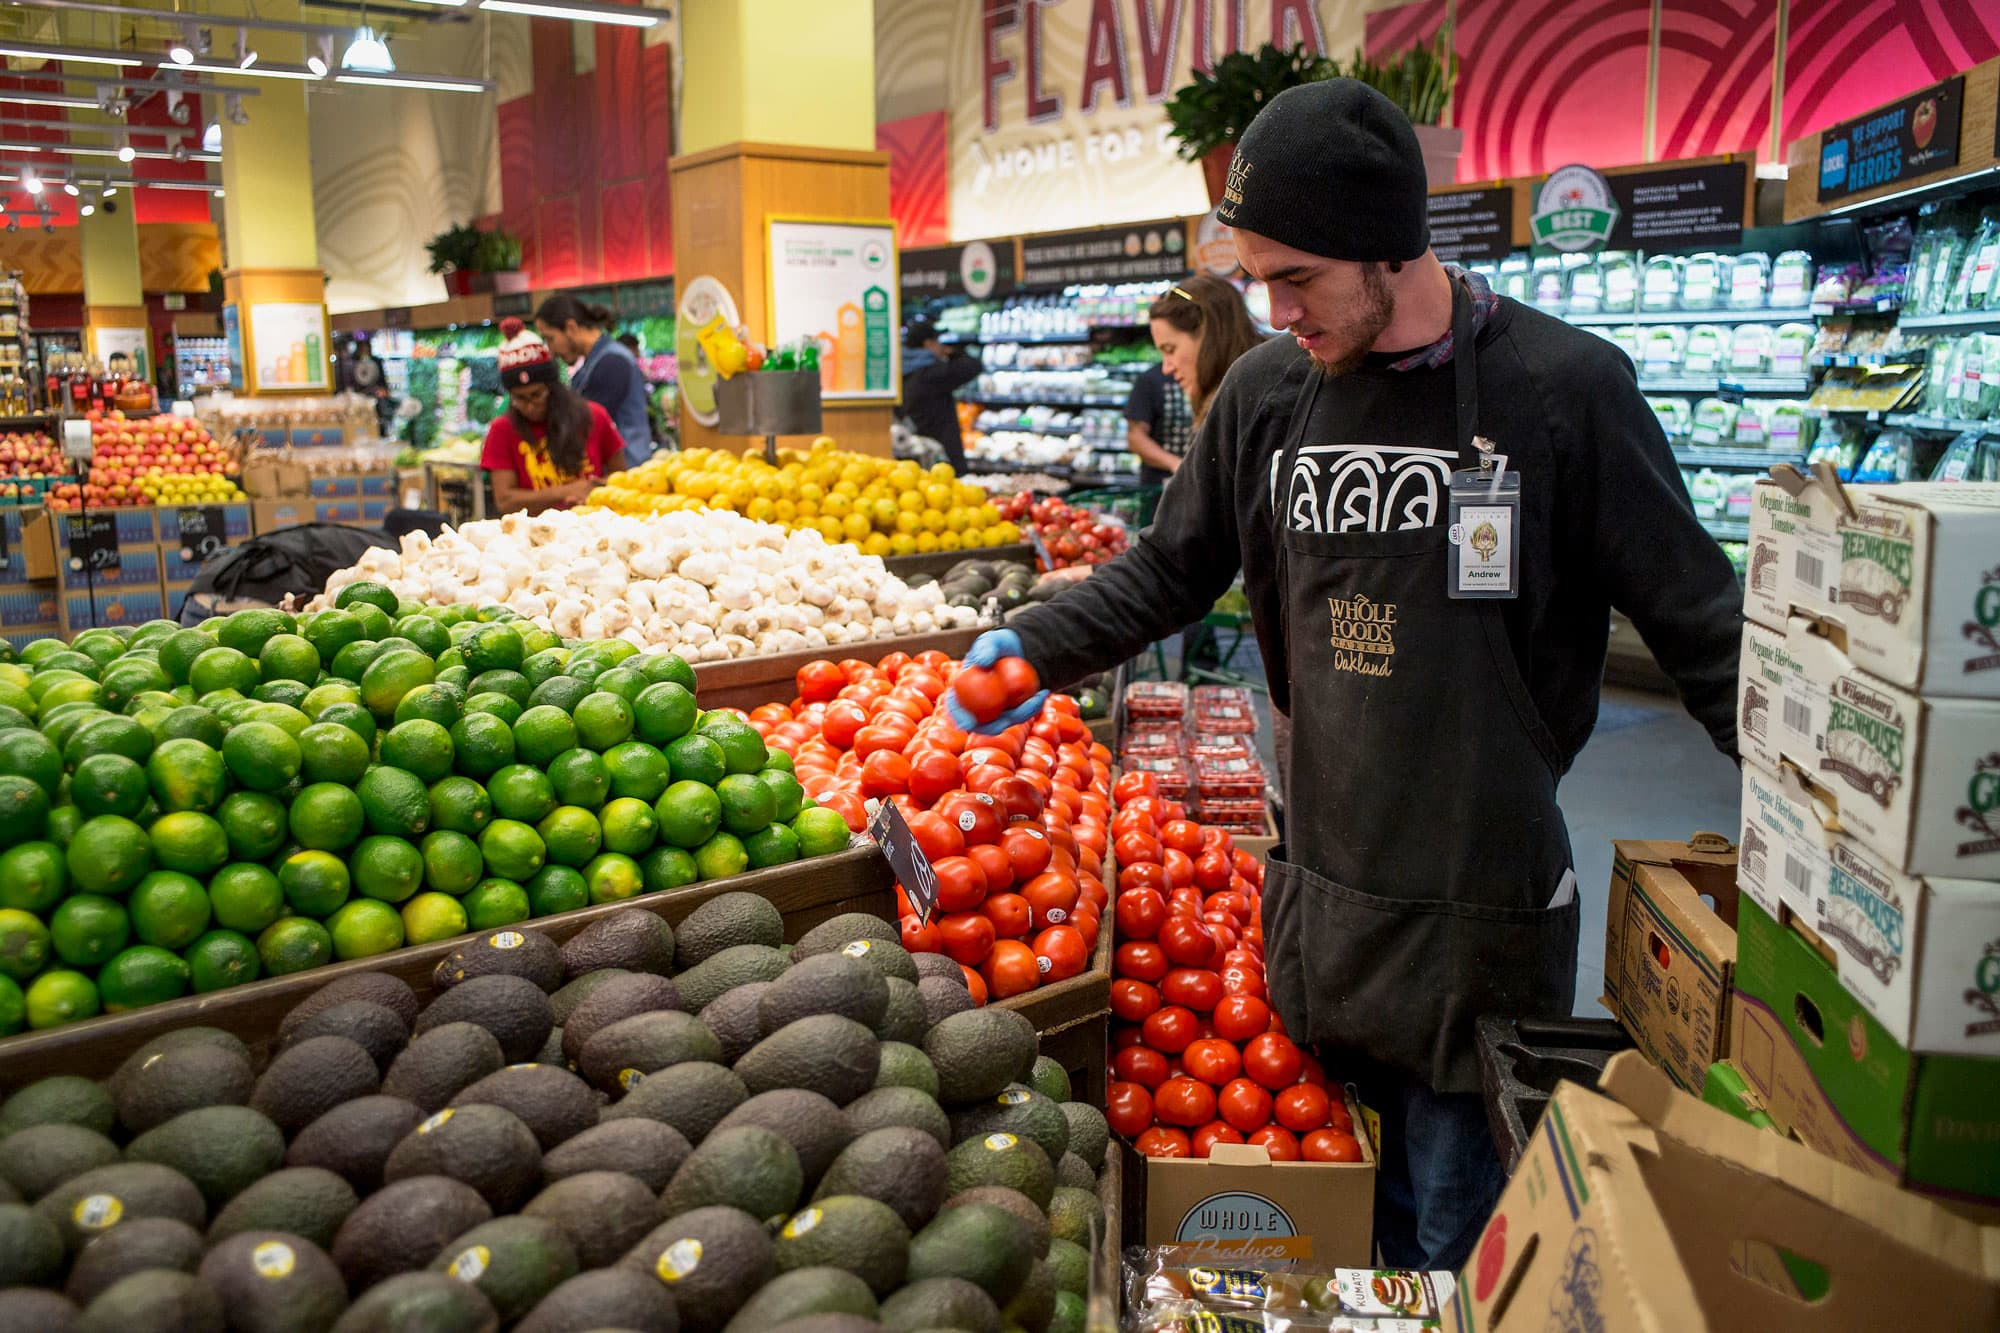 Whole Foods to cut health-care benefits for 1,900 part-time employees starting next year